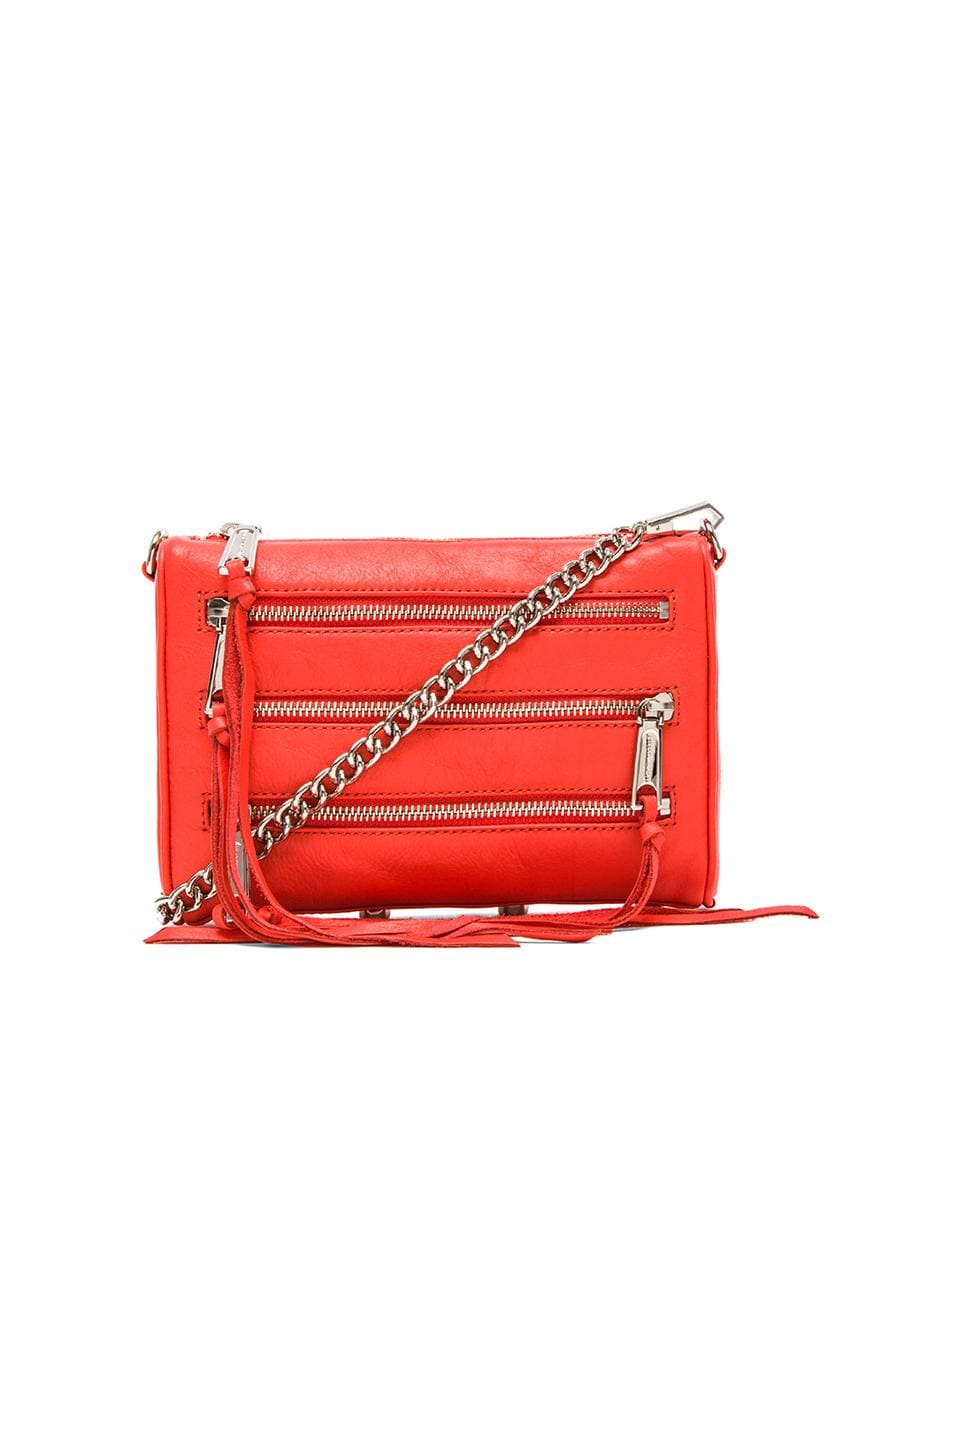 Rebecca Minkoff Mini 5 Zip in Blood Orange